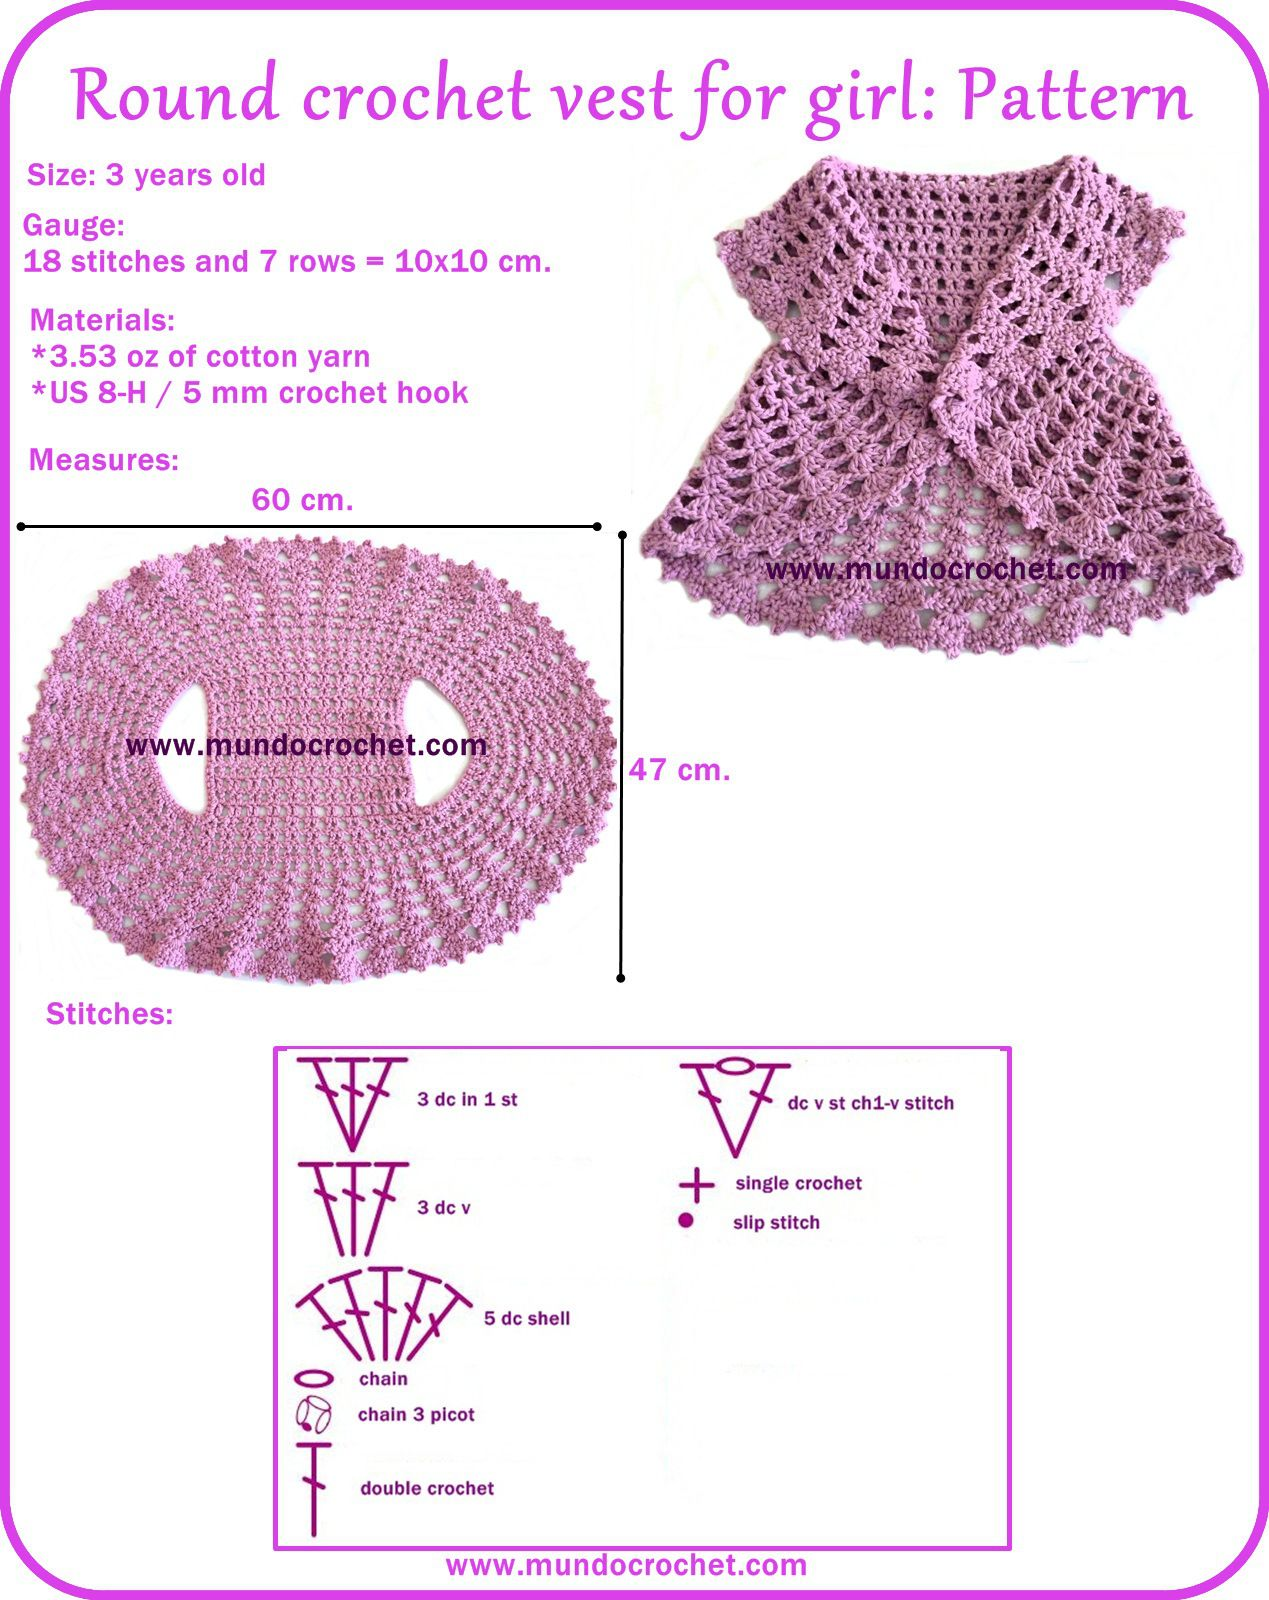 Round crochet vest for girl baby pinterest rounding crochet knit and wedding bridal accessories and free pattern handmade circular crochet shrug bolero cardigan hippie vest for girls free cardigan crochet bankloansurffo Choice Image